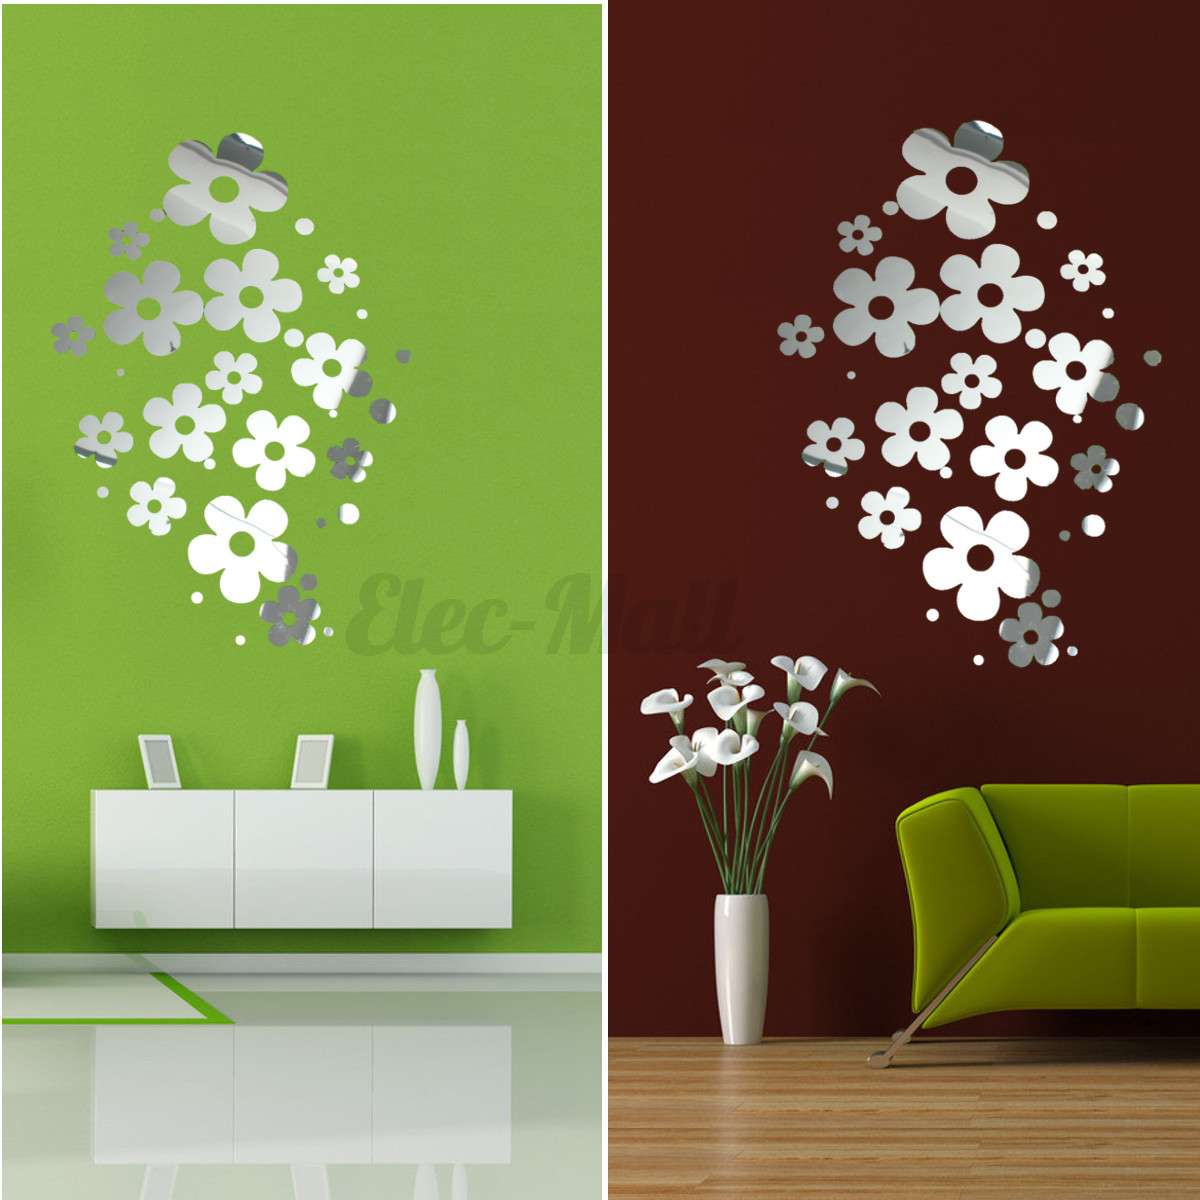 Removable diy 3d mirror surface wall stickers mural art for Room decor 3d